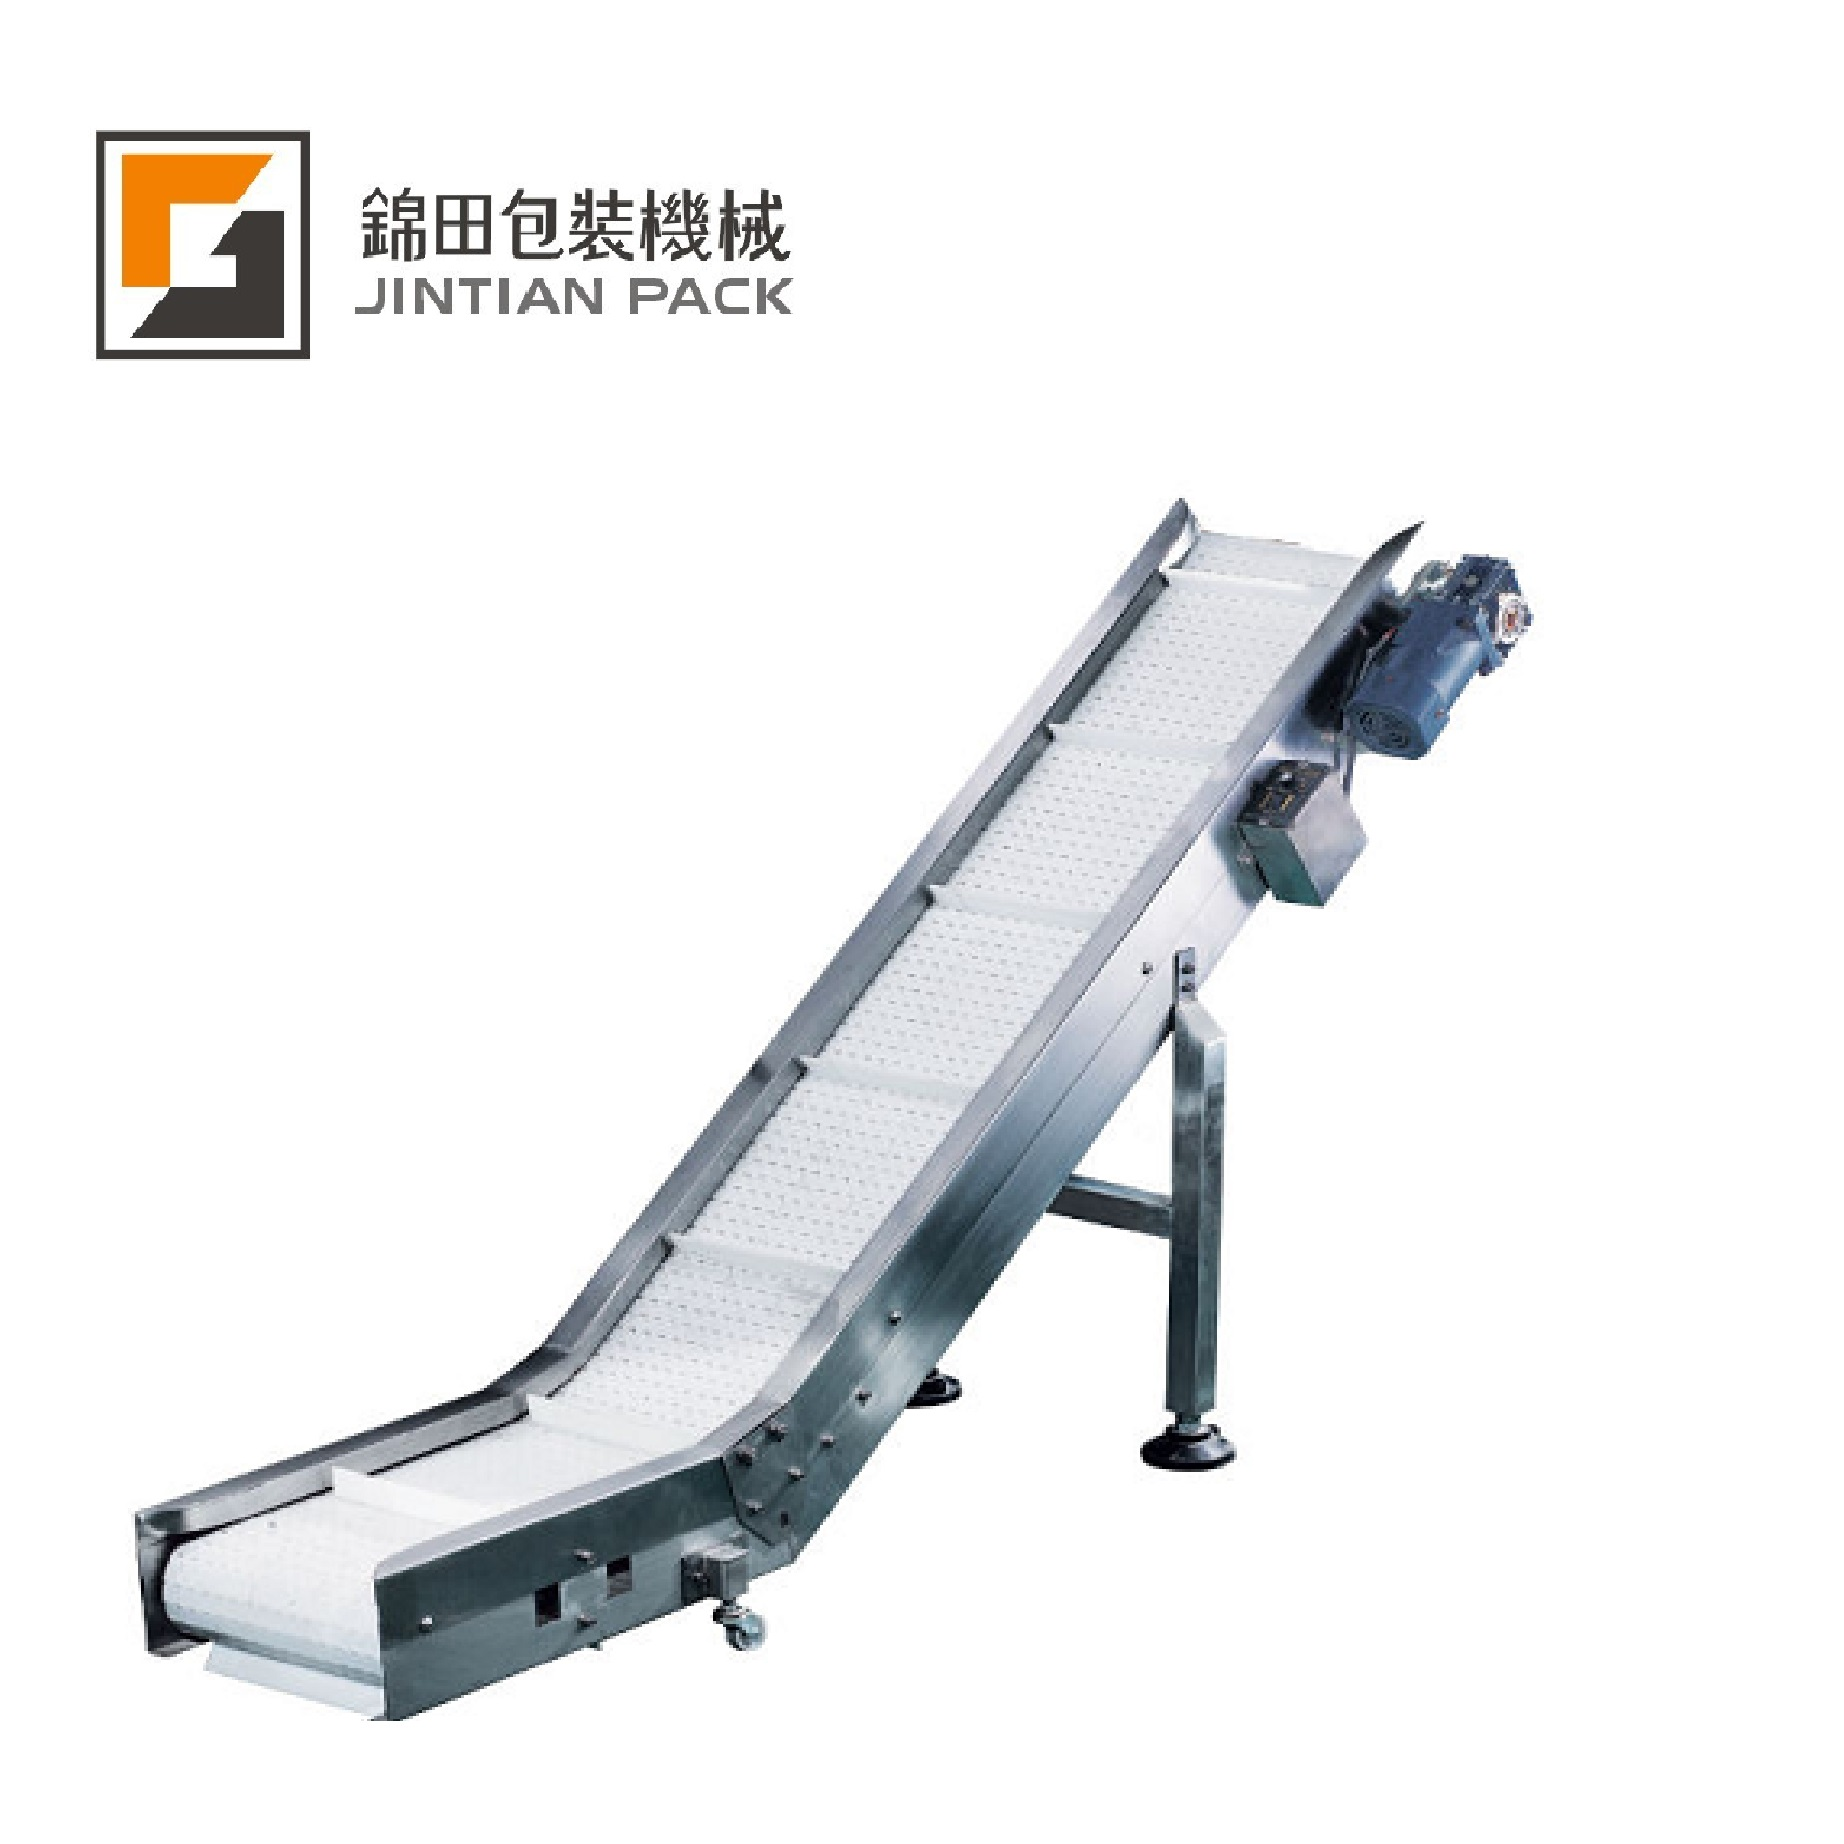 JT-130-2 finished product conveyor